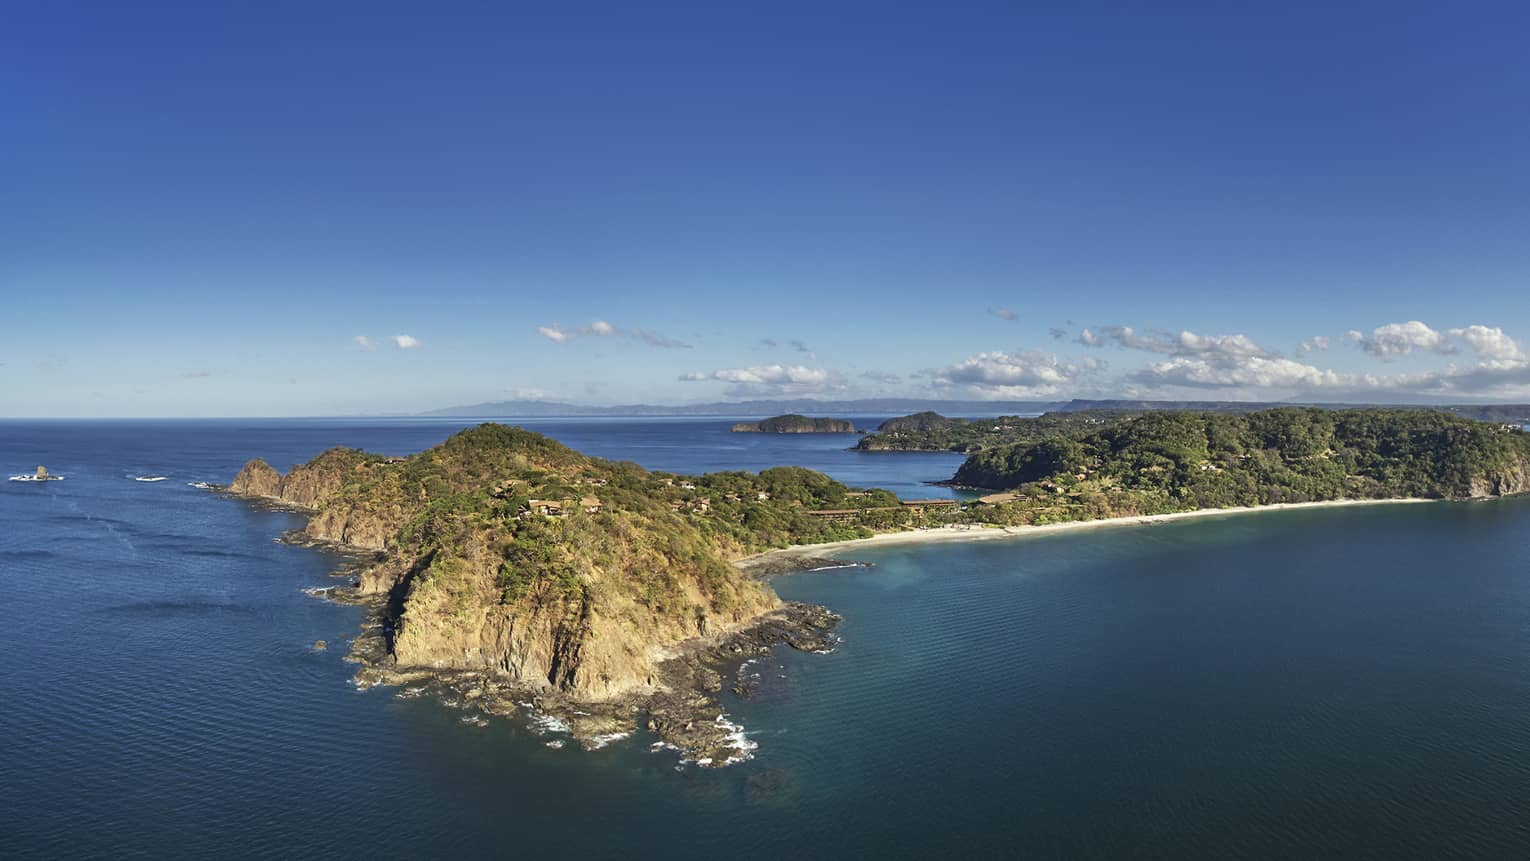 Aerial view looking over rocky cliff along blue waters of Peninsula Papagayo